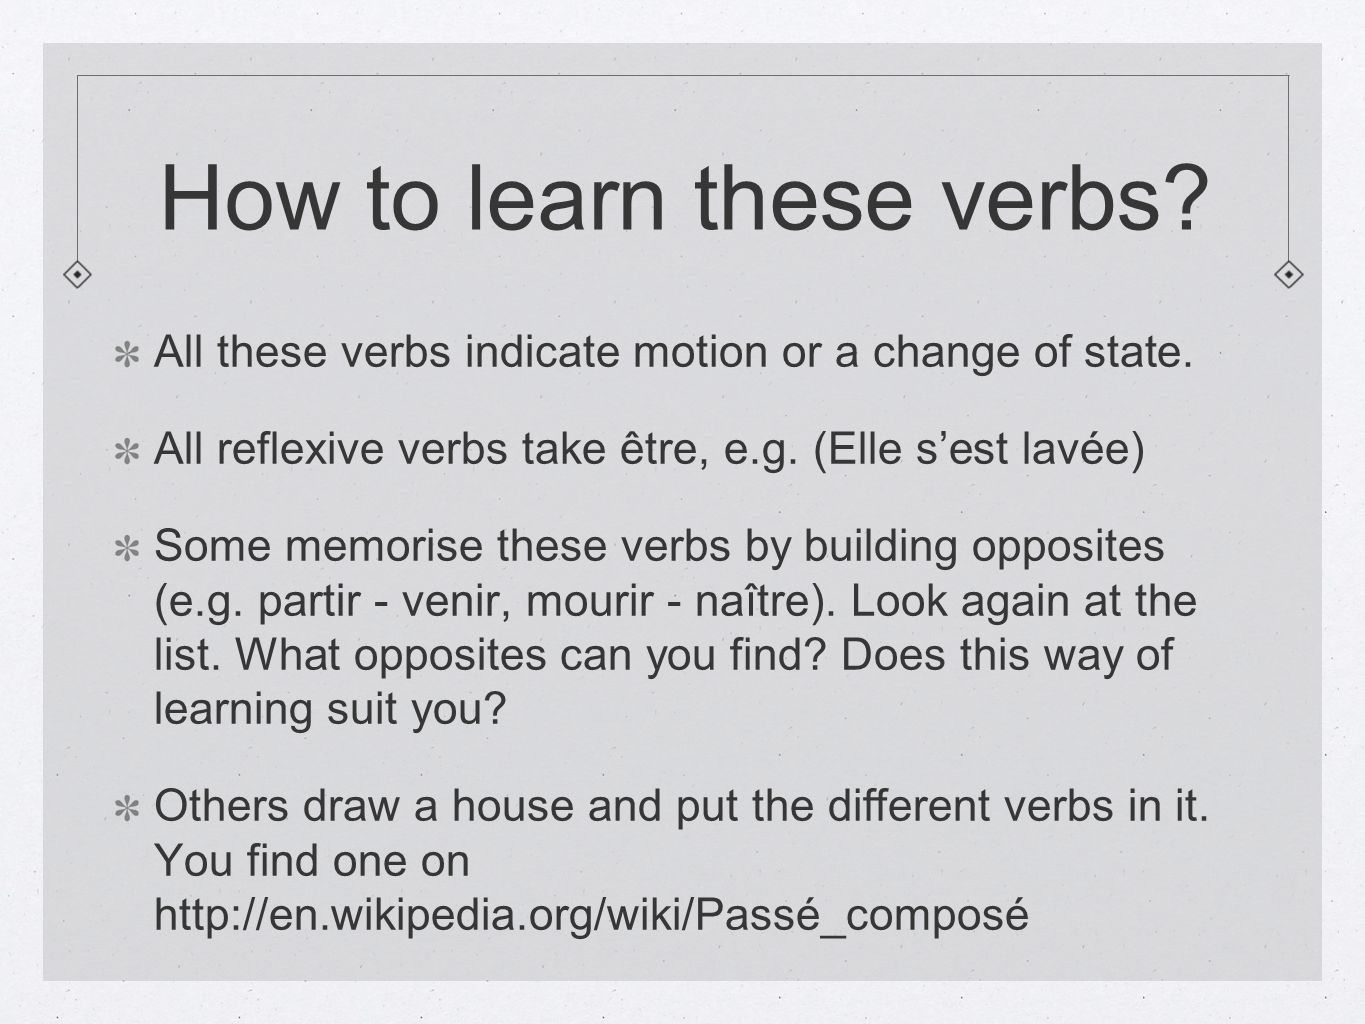 How to learn these verbs